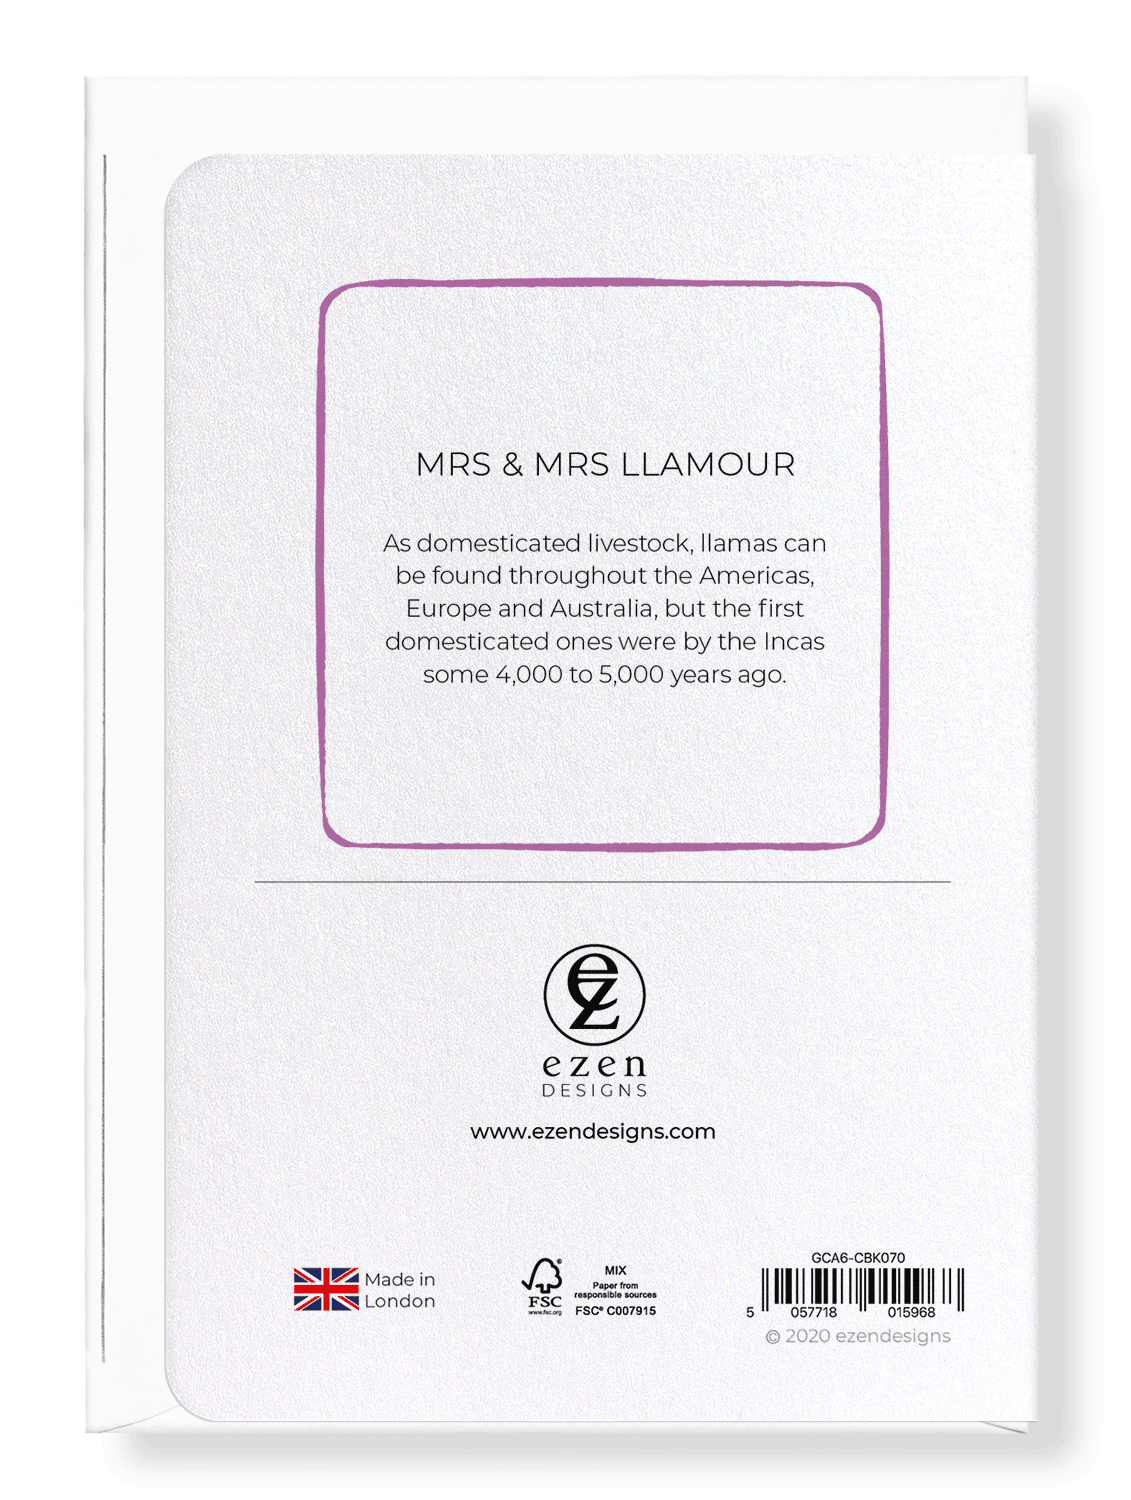 Ezen Designs - Mrs & mrs llamour - Greeting Card - Back